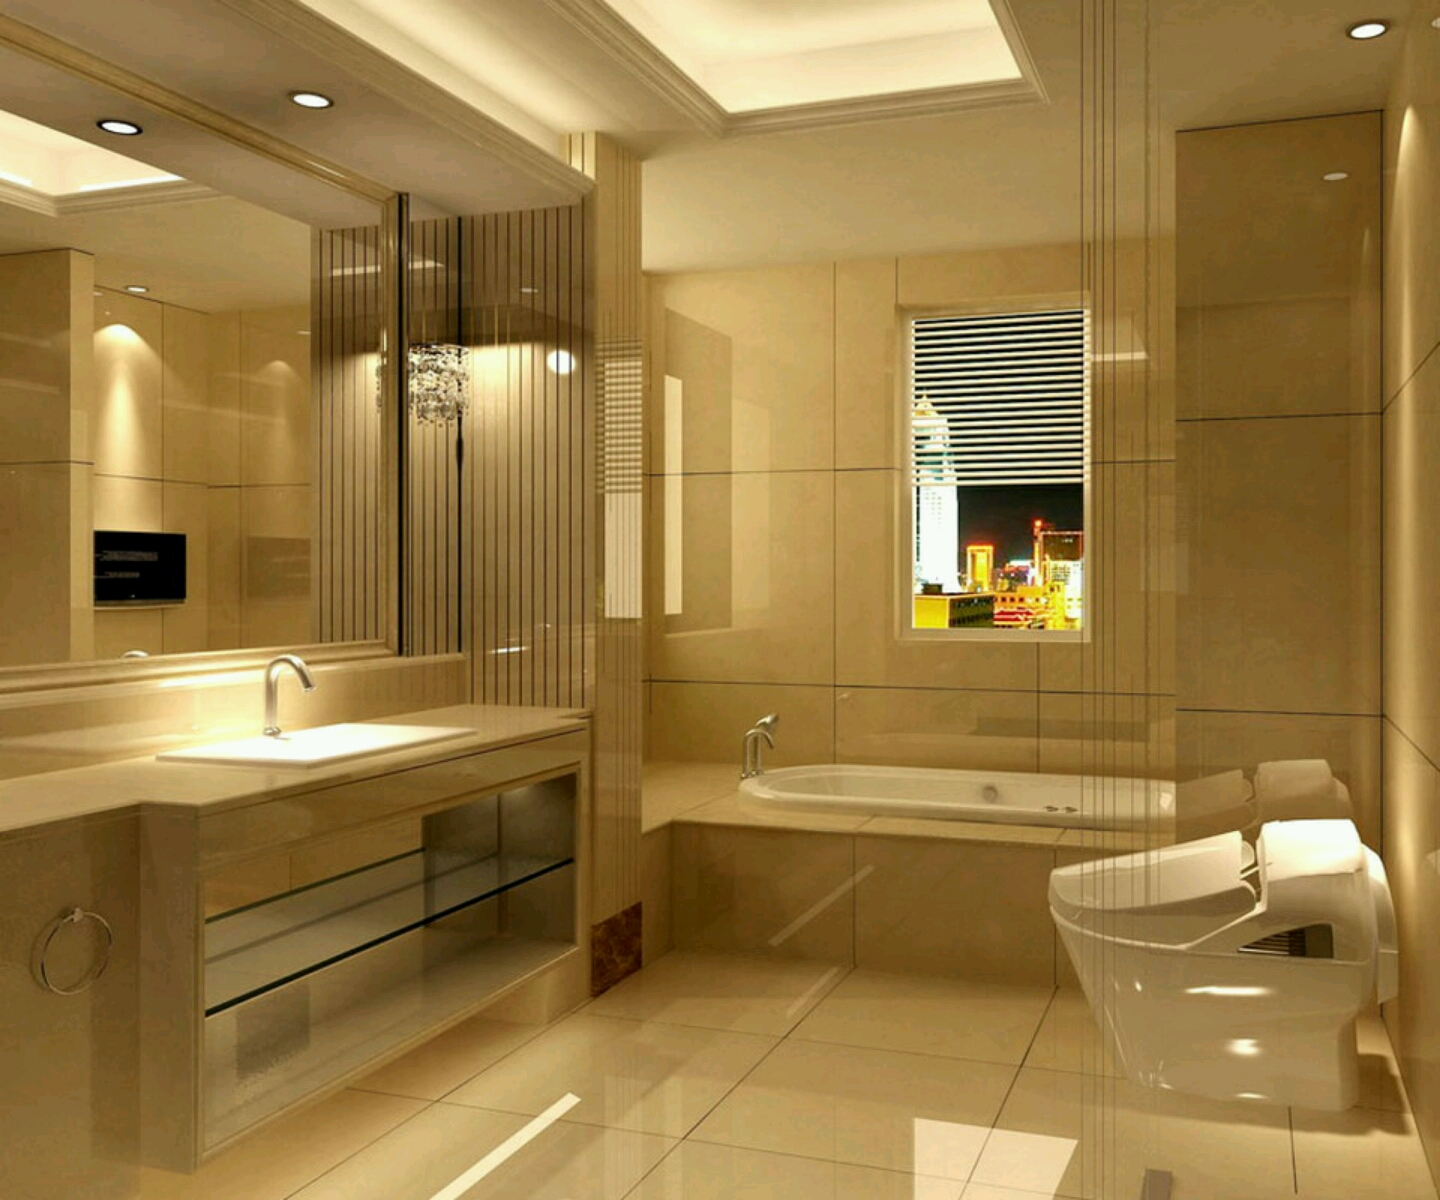 Modern bathrooms setting ideas furniture gallery for Bathroom design galleries